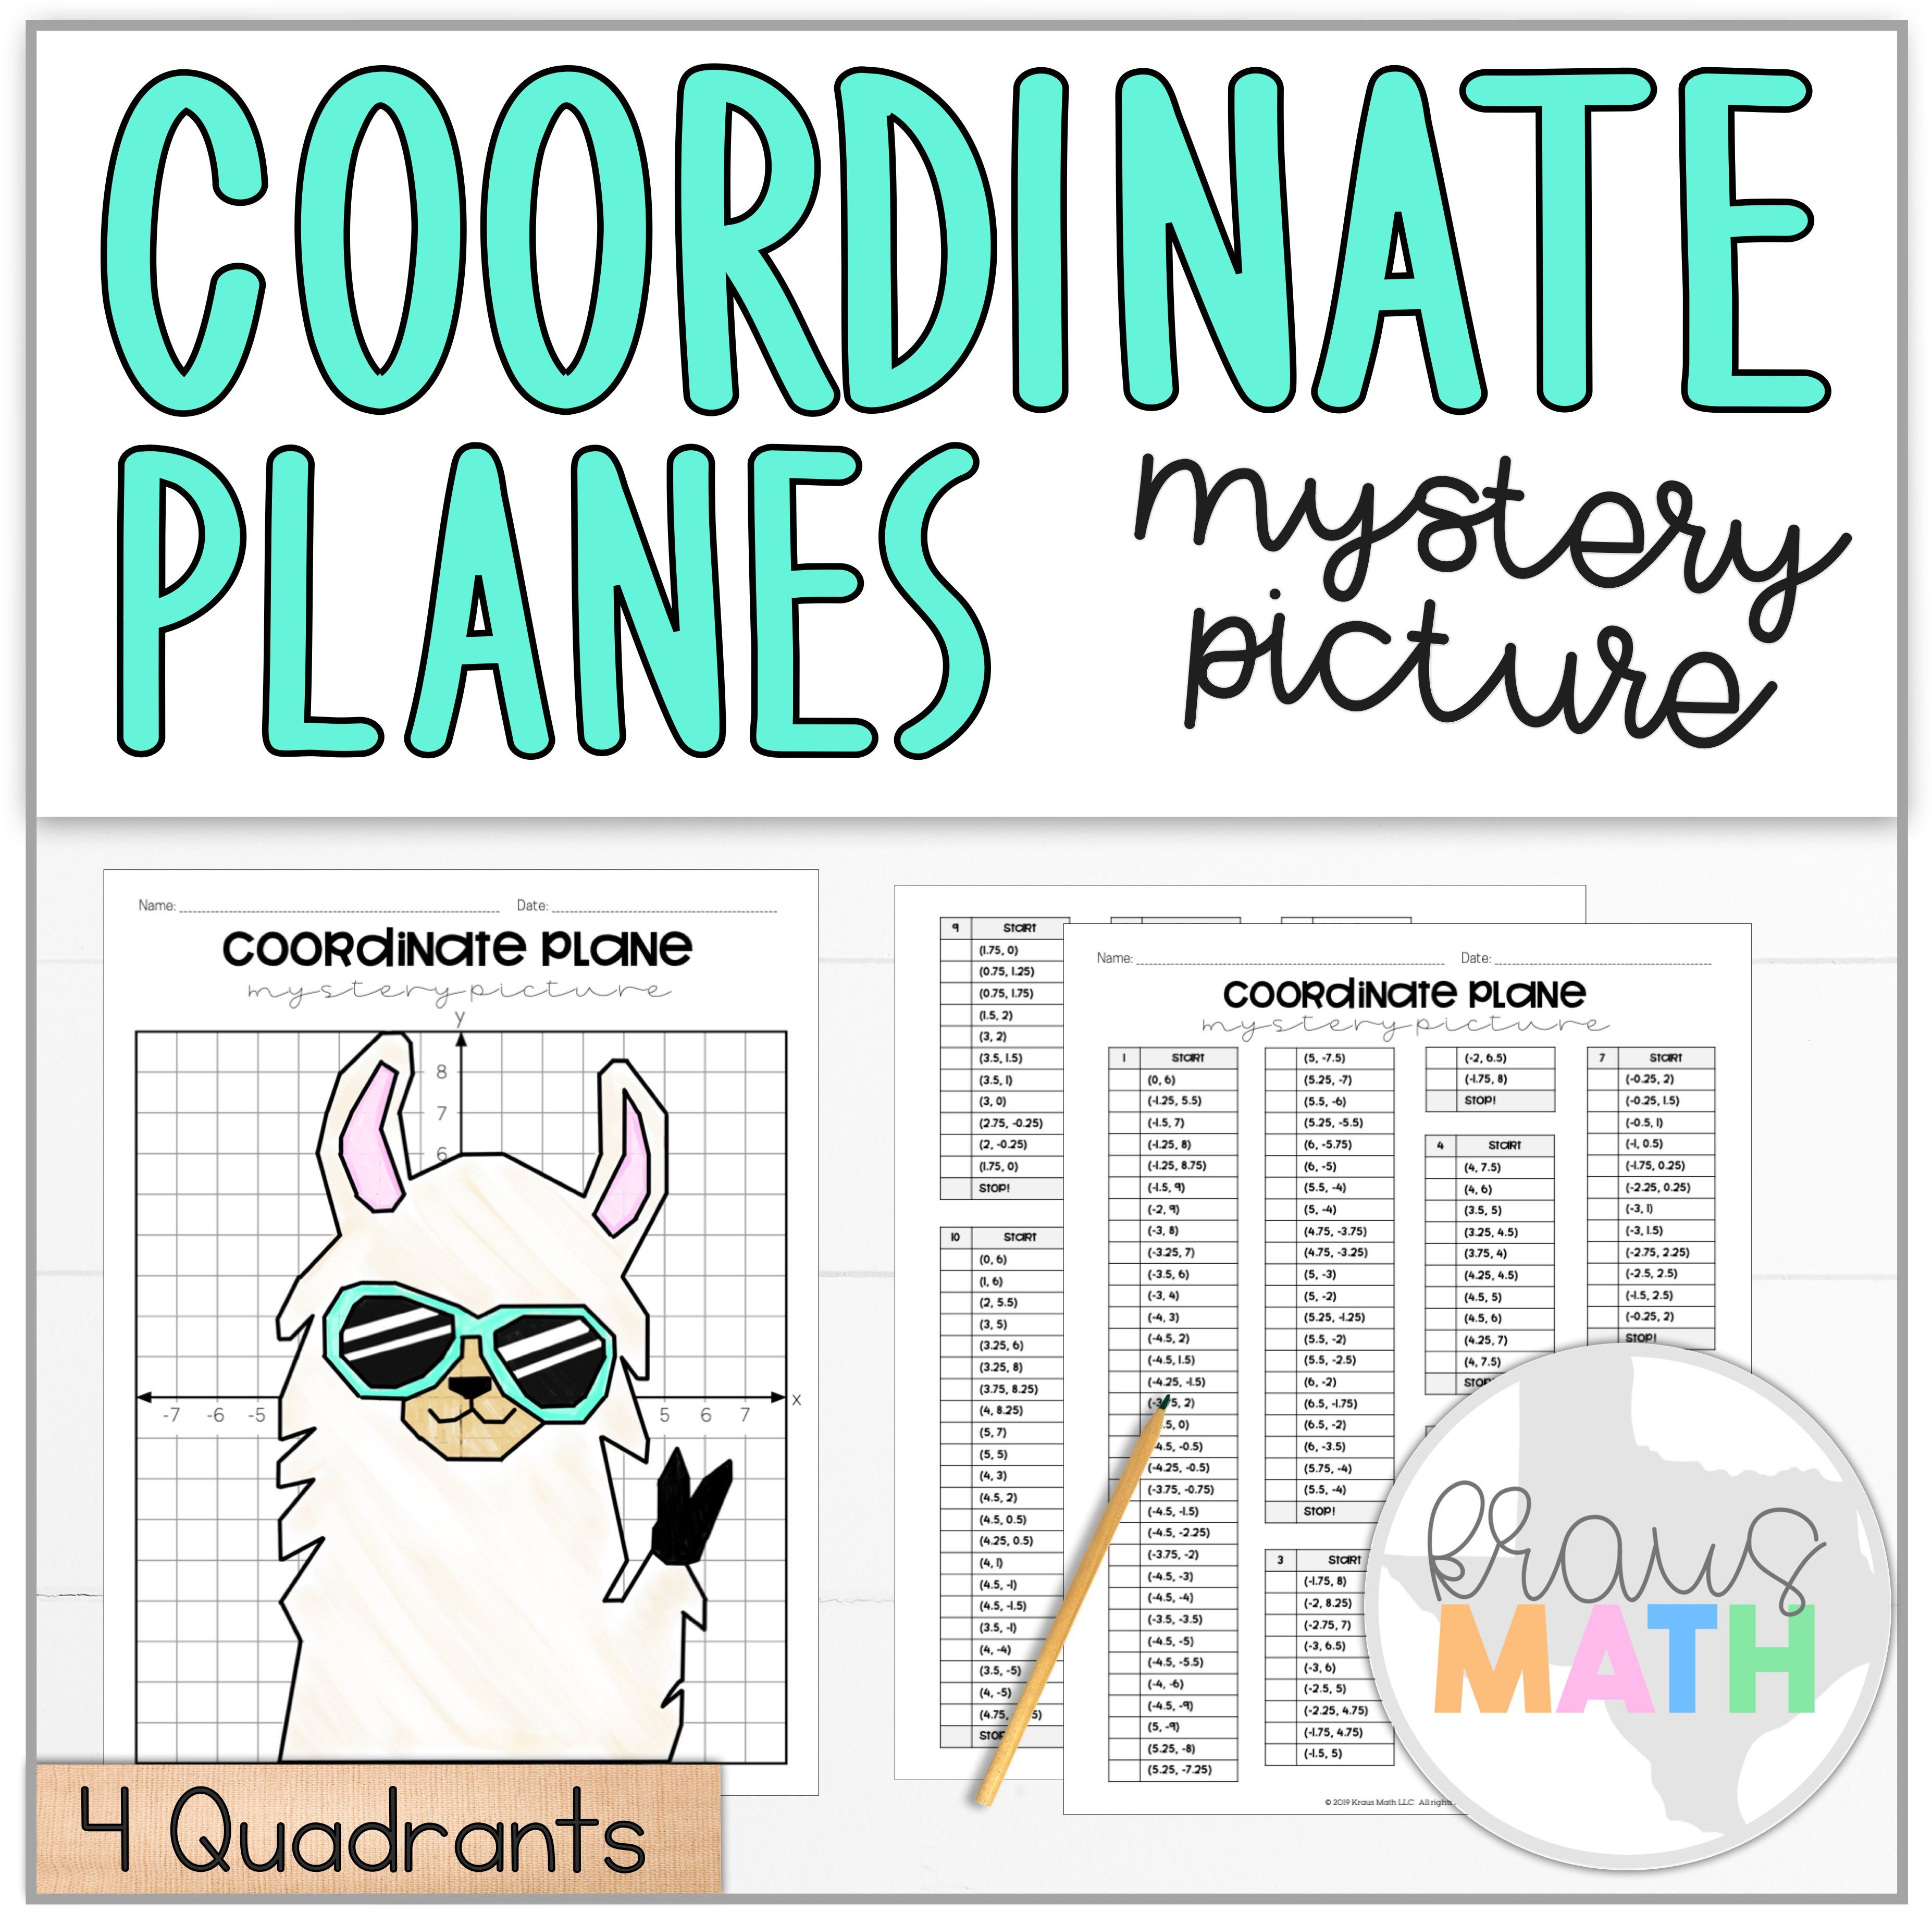 Llama Peace Out Coordinate Plane Mystery Picture 4